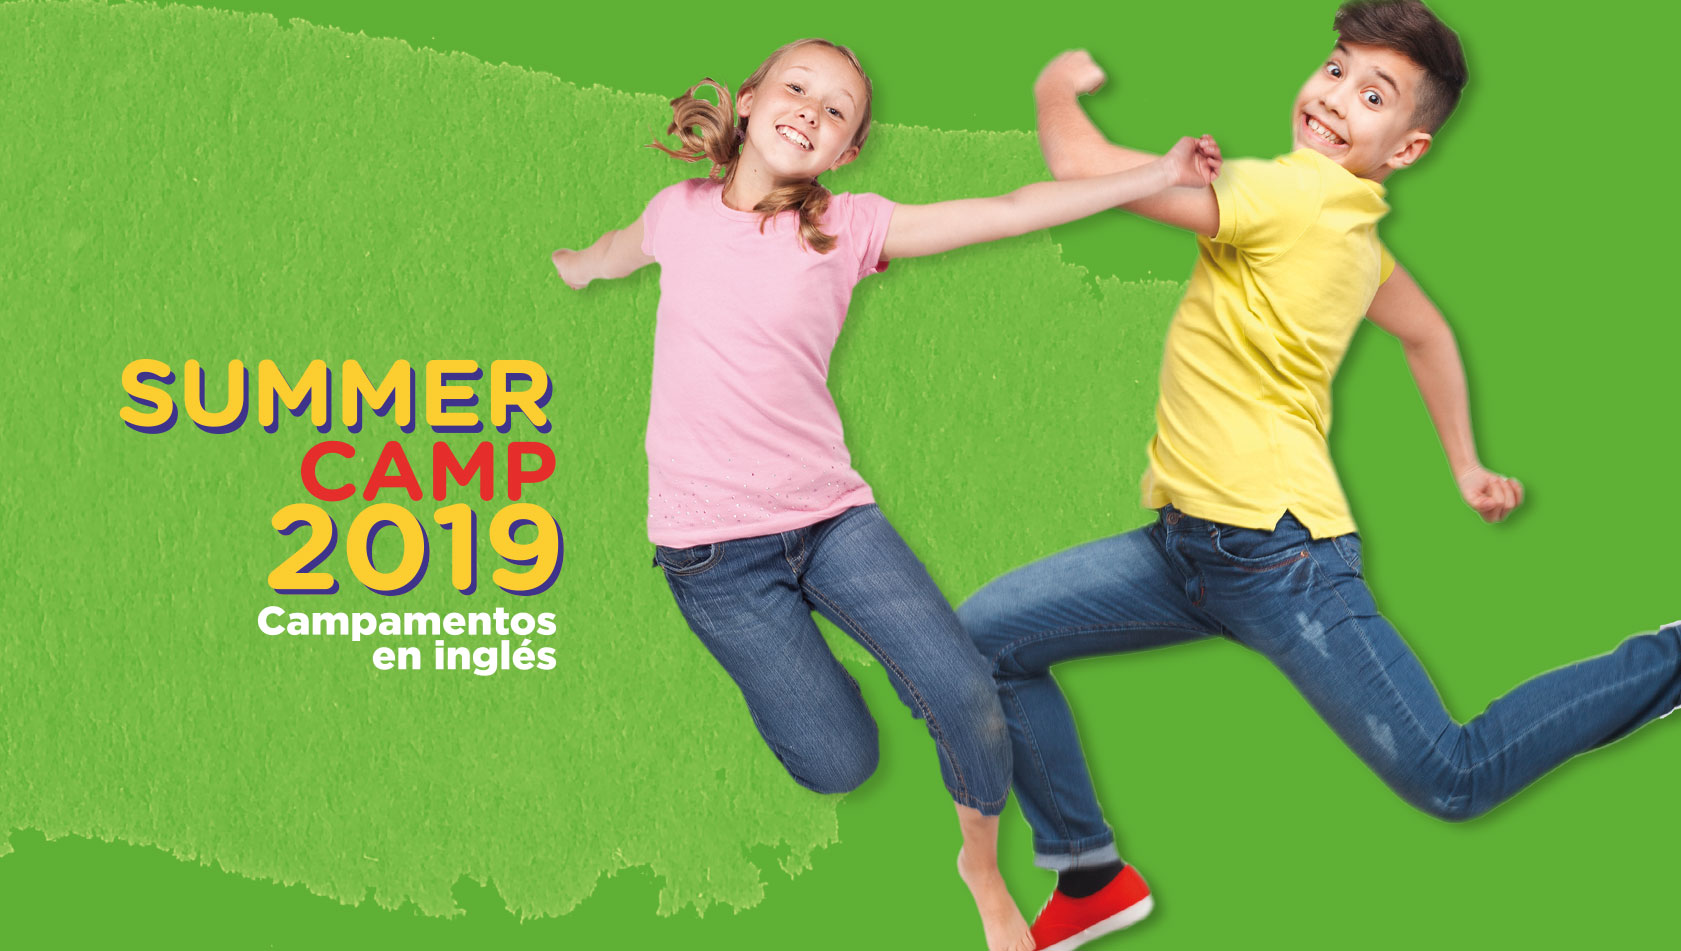 Summer Camp en julio